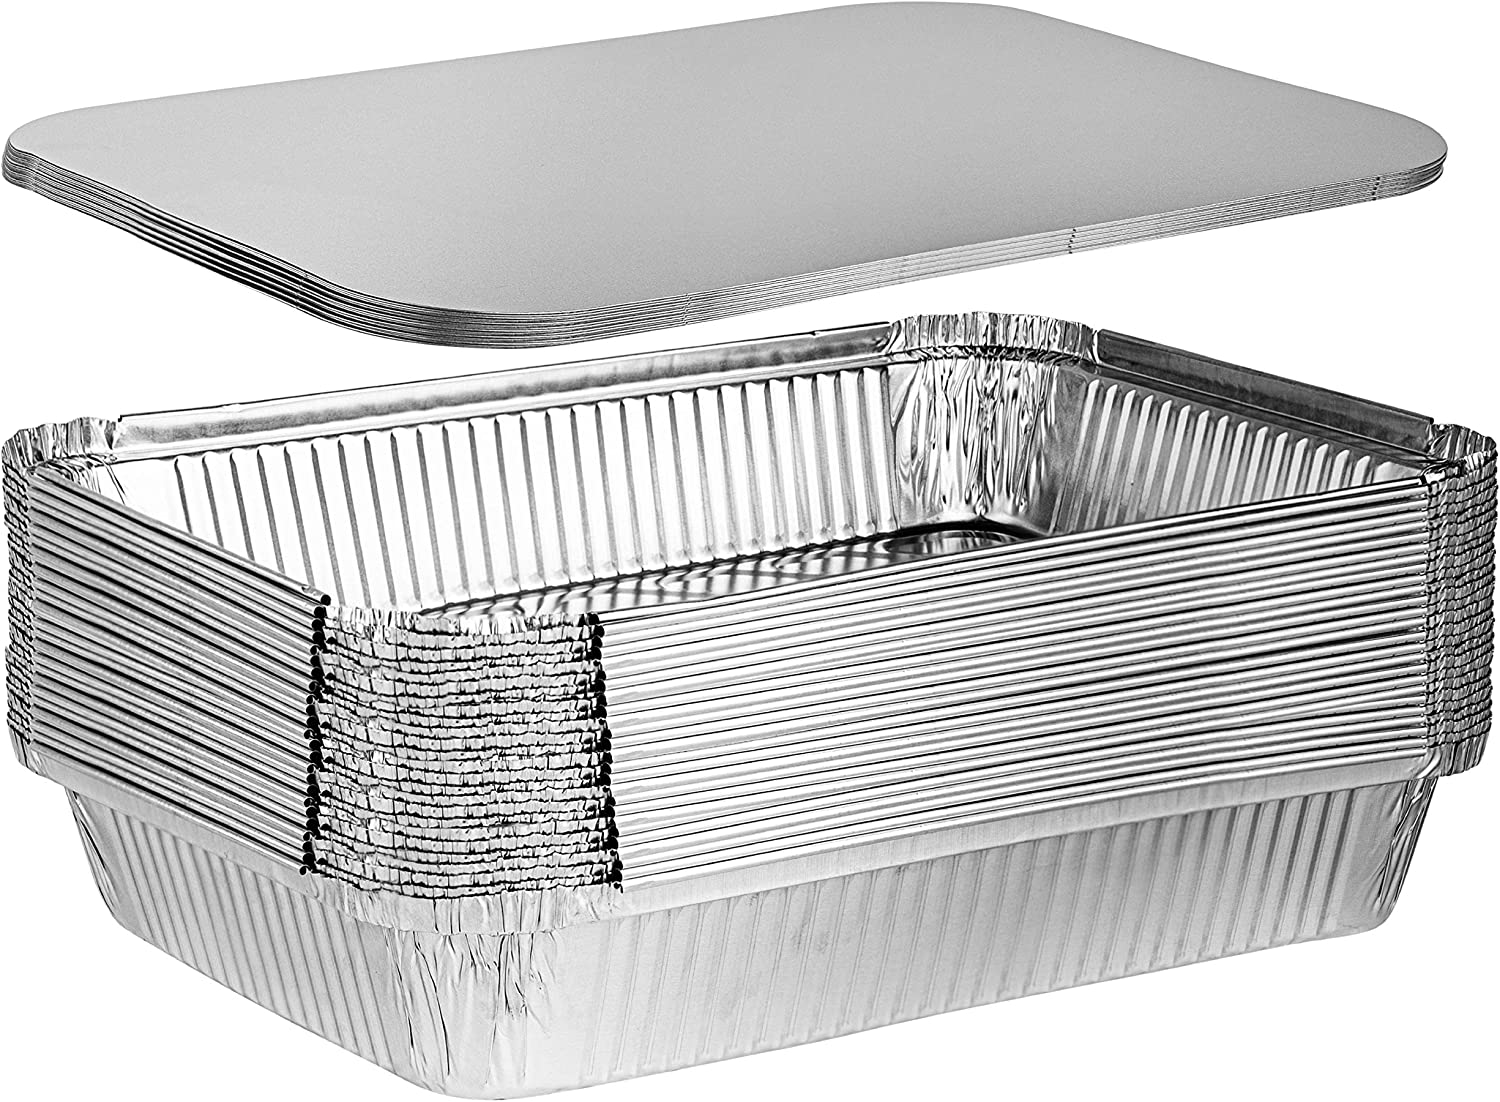 Plasticpro Disposable 4 LB Aluminum Takeout Tin Foil Oblong Baking Pans 12'' X 8'' X 2'' Inch With Cardboard Lids Bakeware - Cookware Perfect for Cakes, Bread, Lasagna, or Lunchbox, Pack of 10